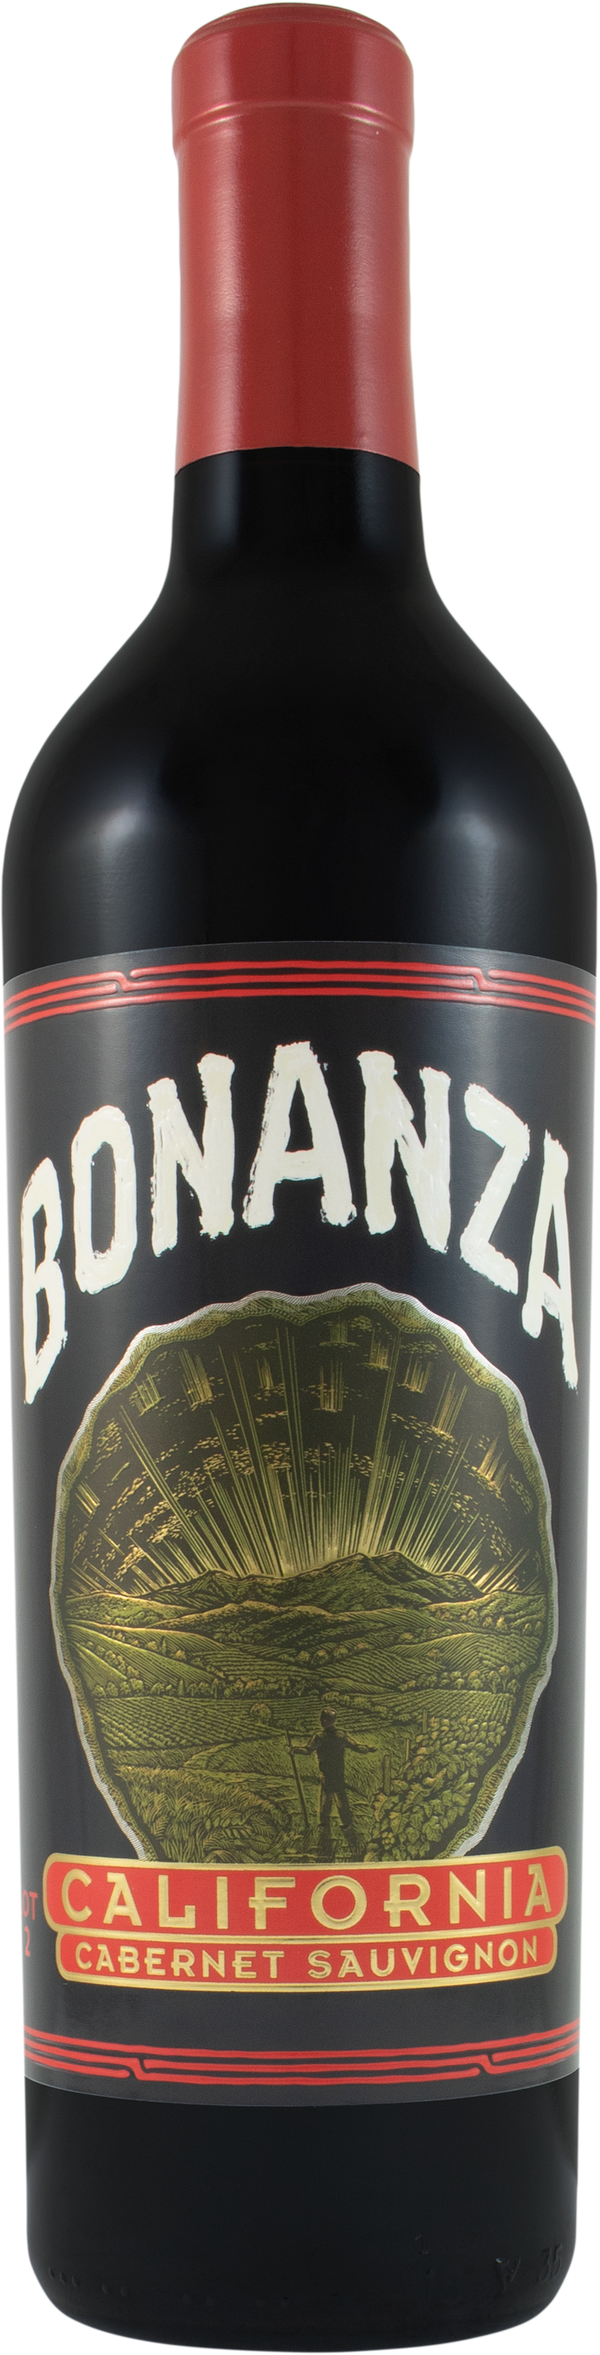 Bonanza California Cabernet Sauvigon Lot 3 750ml